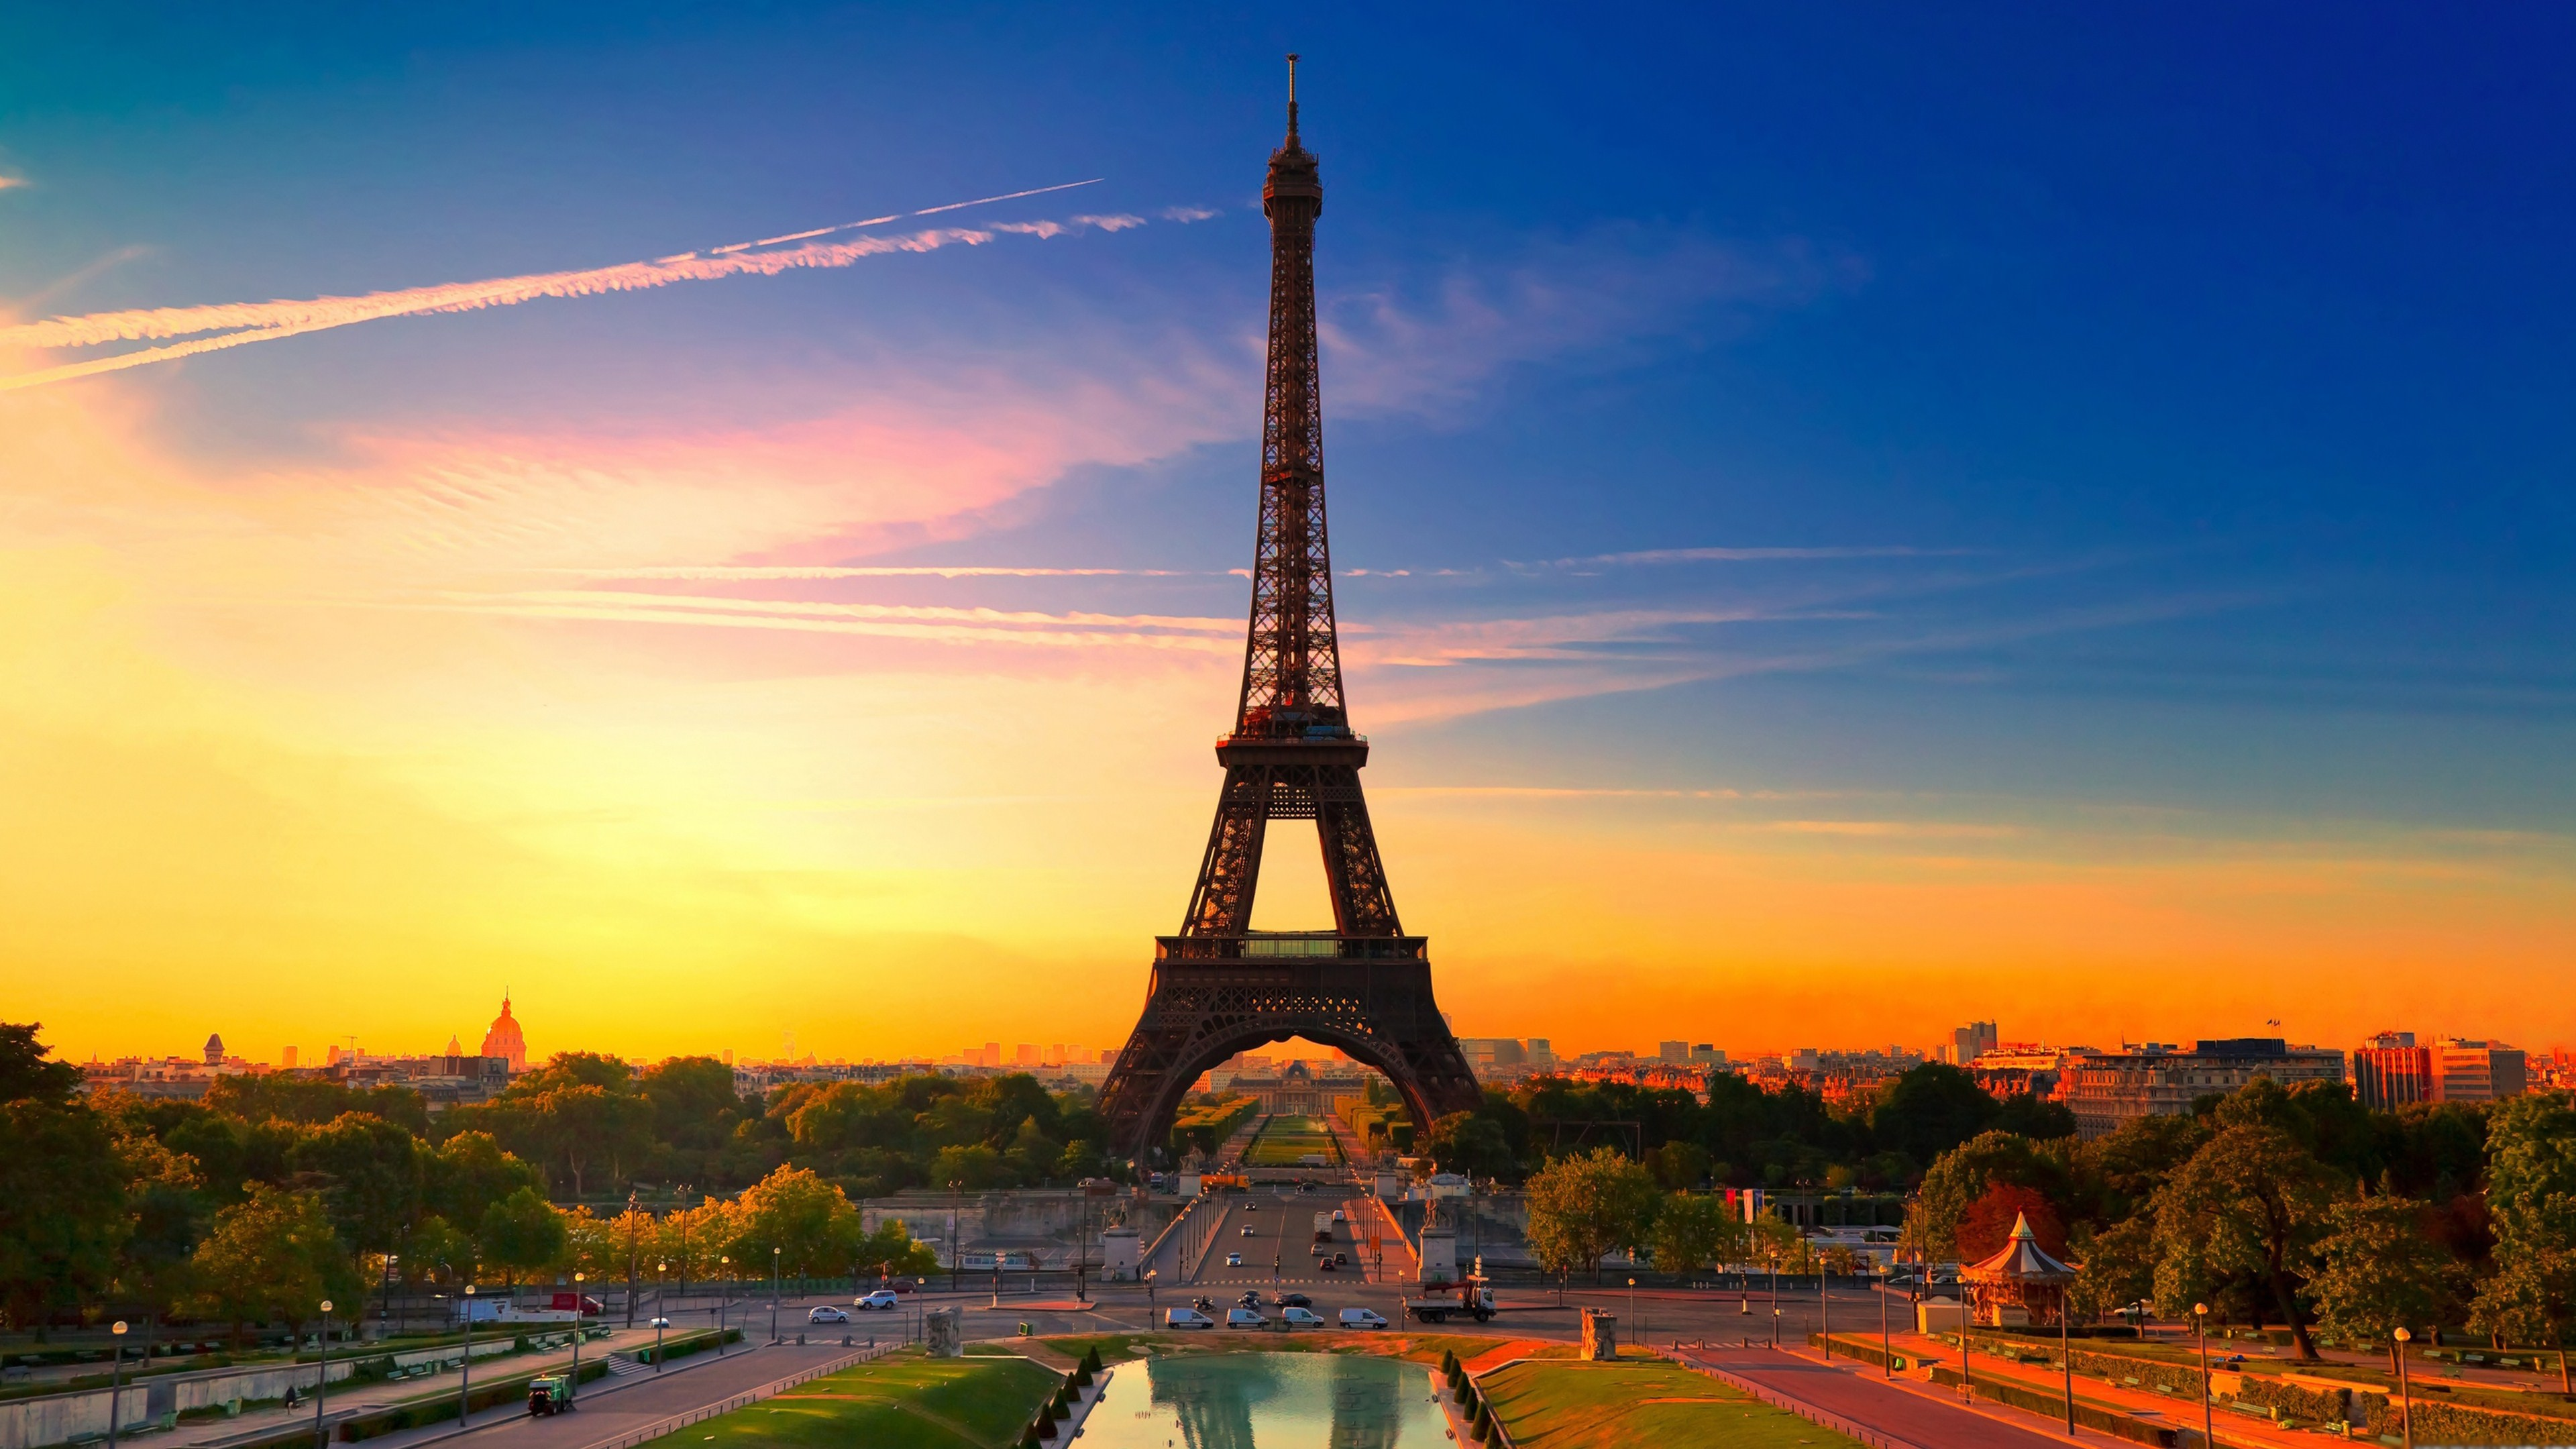 Paris Eiffel Tower Wallpaper